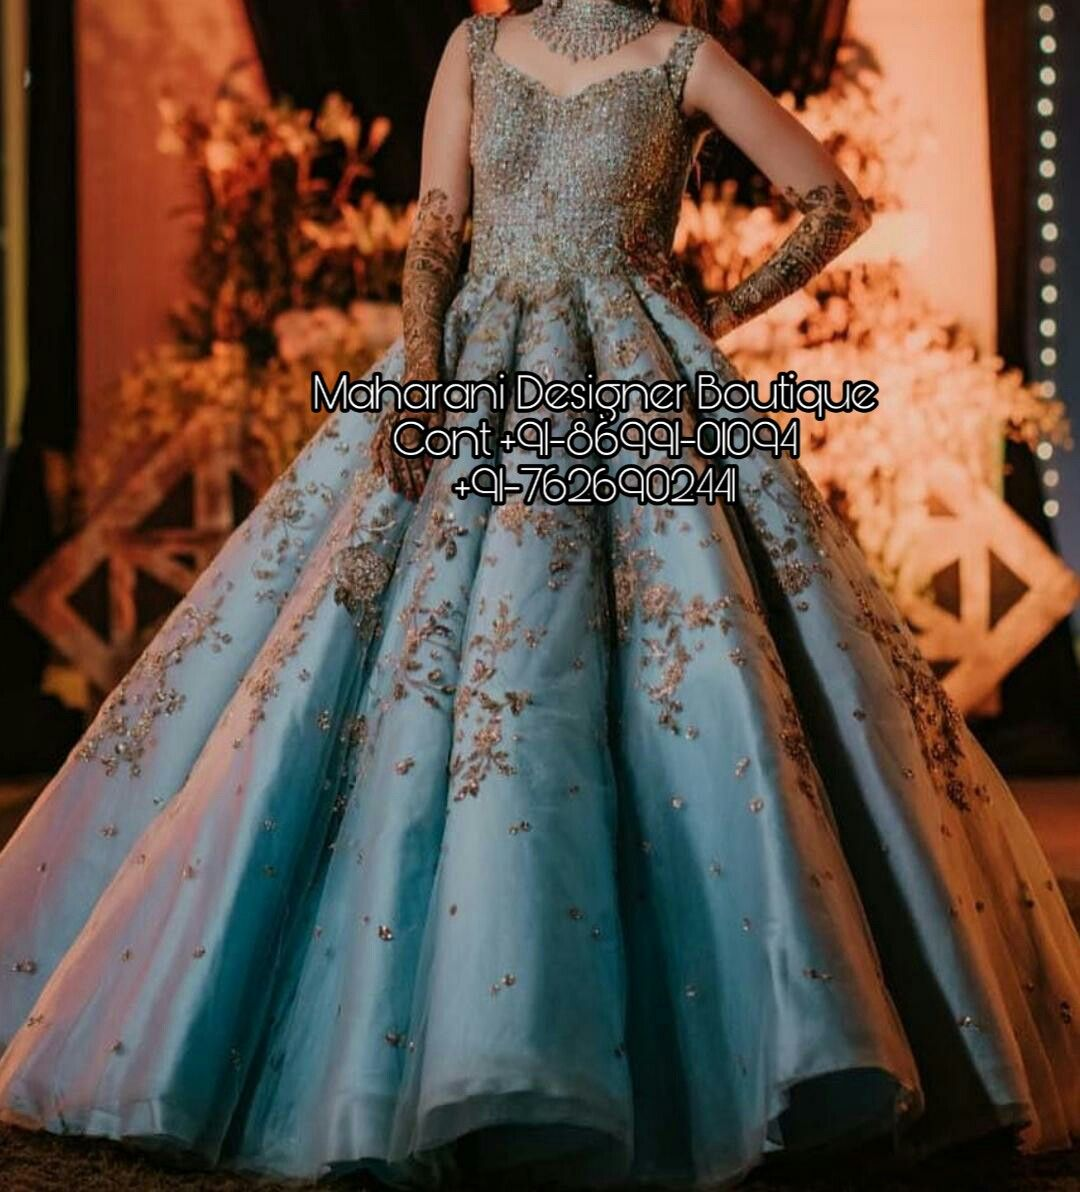 How Much Does A Wedding Dress Cost The Couture Edition Wedding Dress Cost Metallic Wedding Dresses Couture Gowns